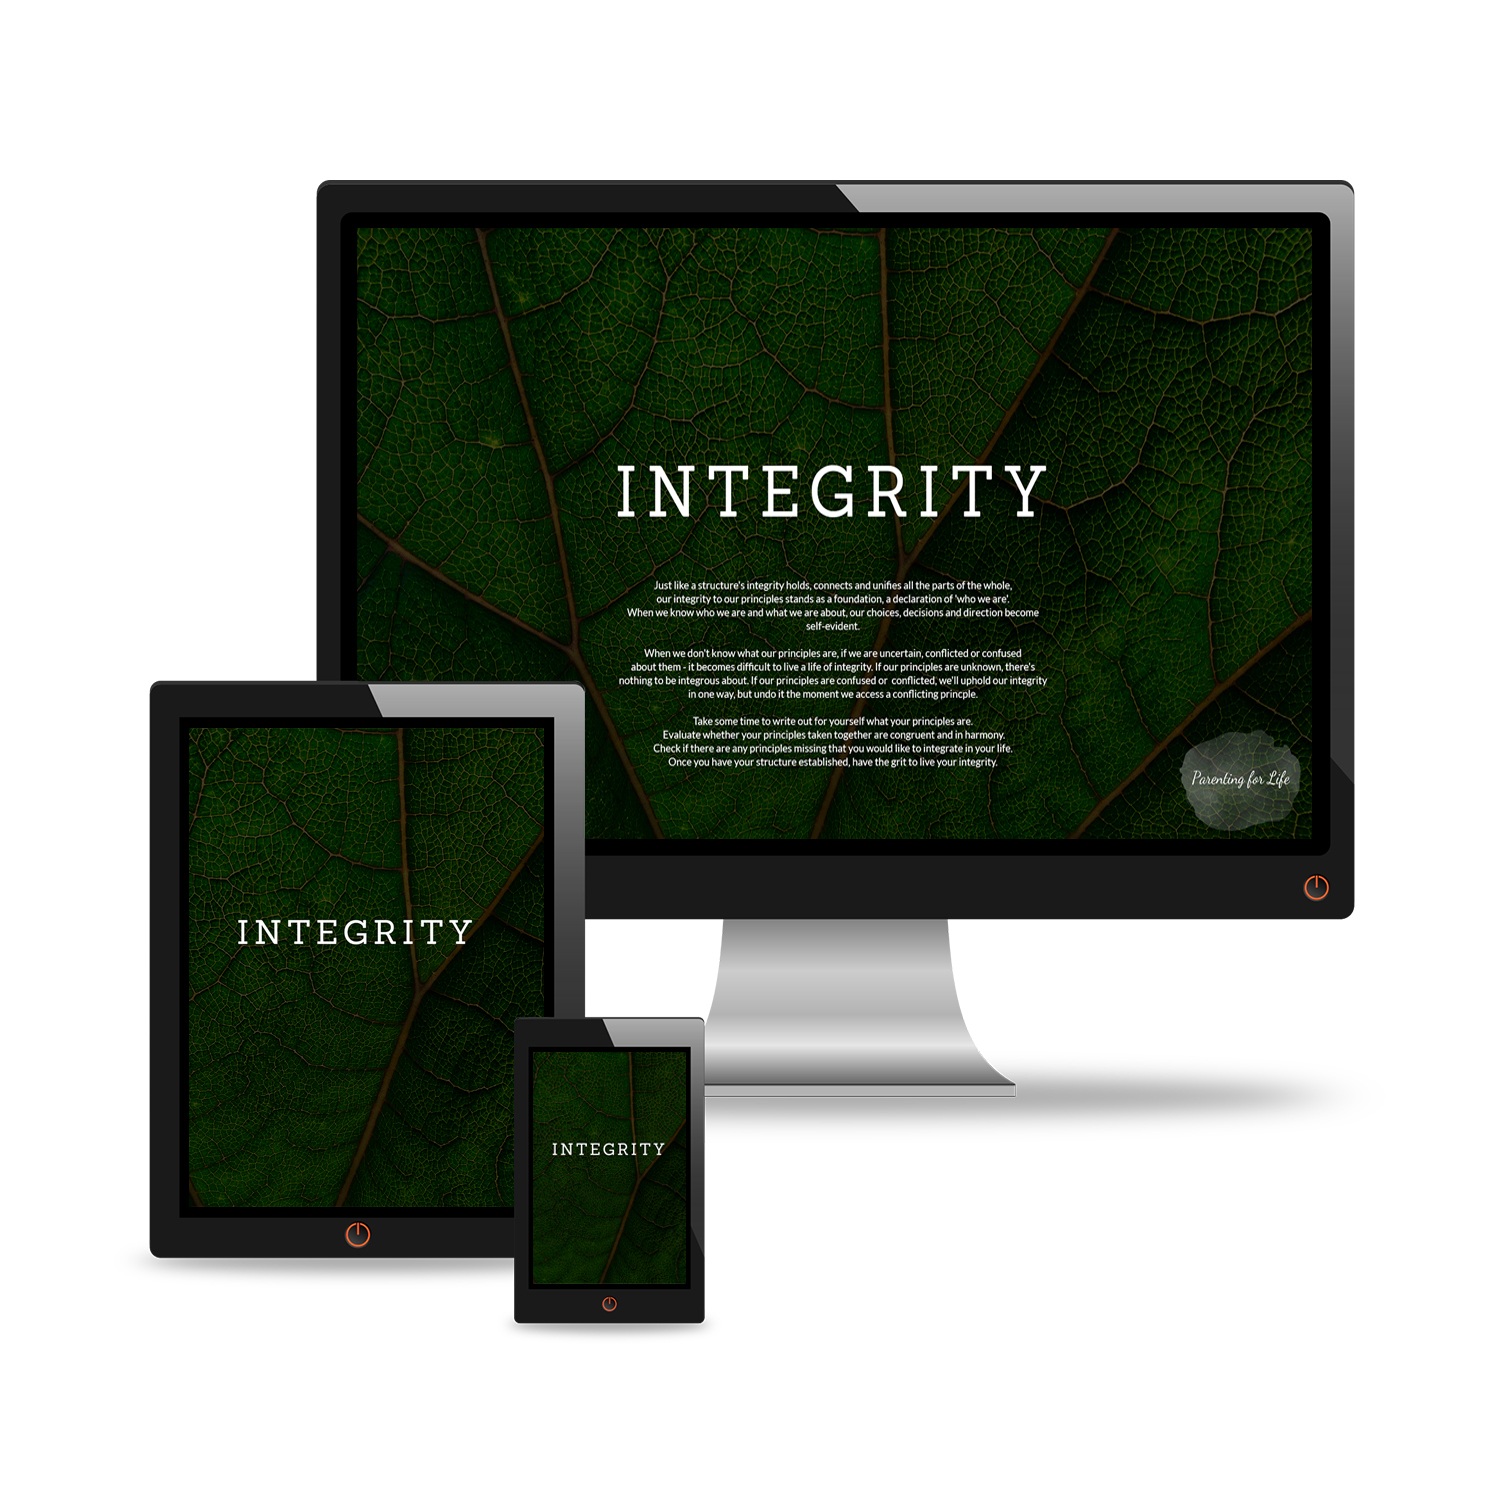 Integrity Wallpaper Parenting For Life